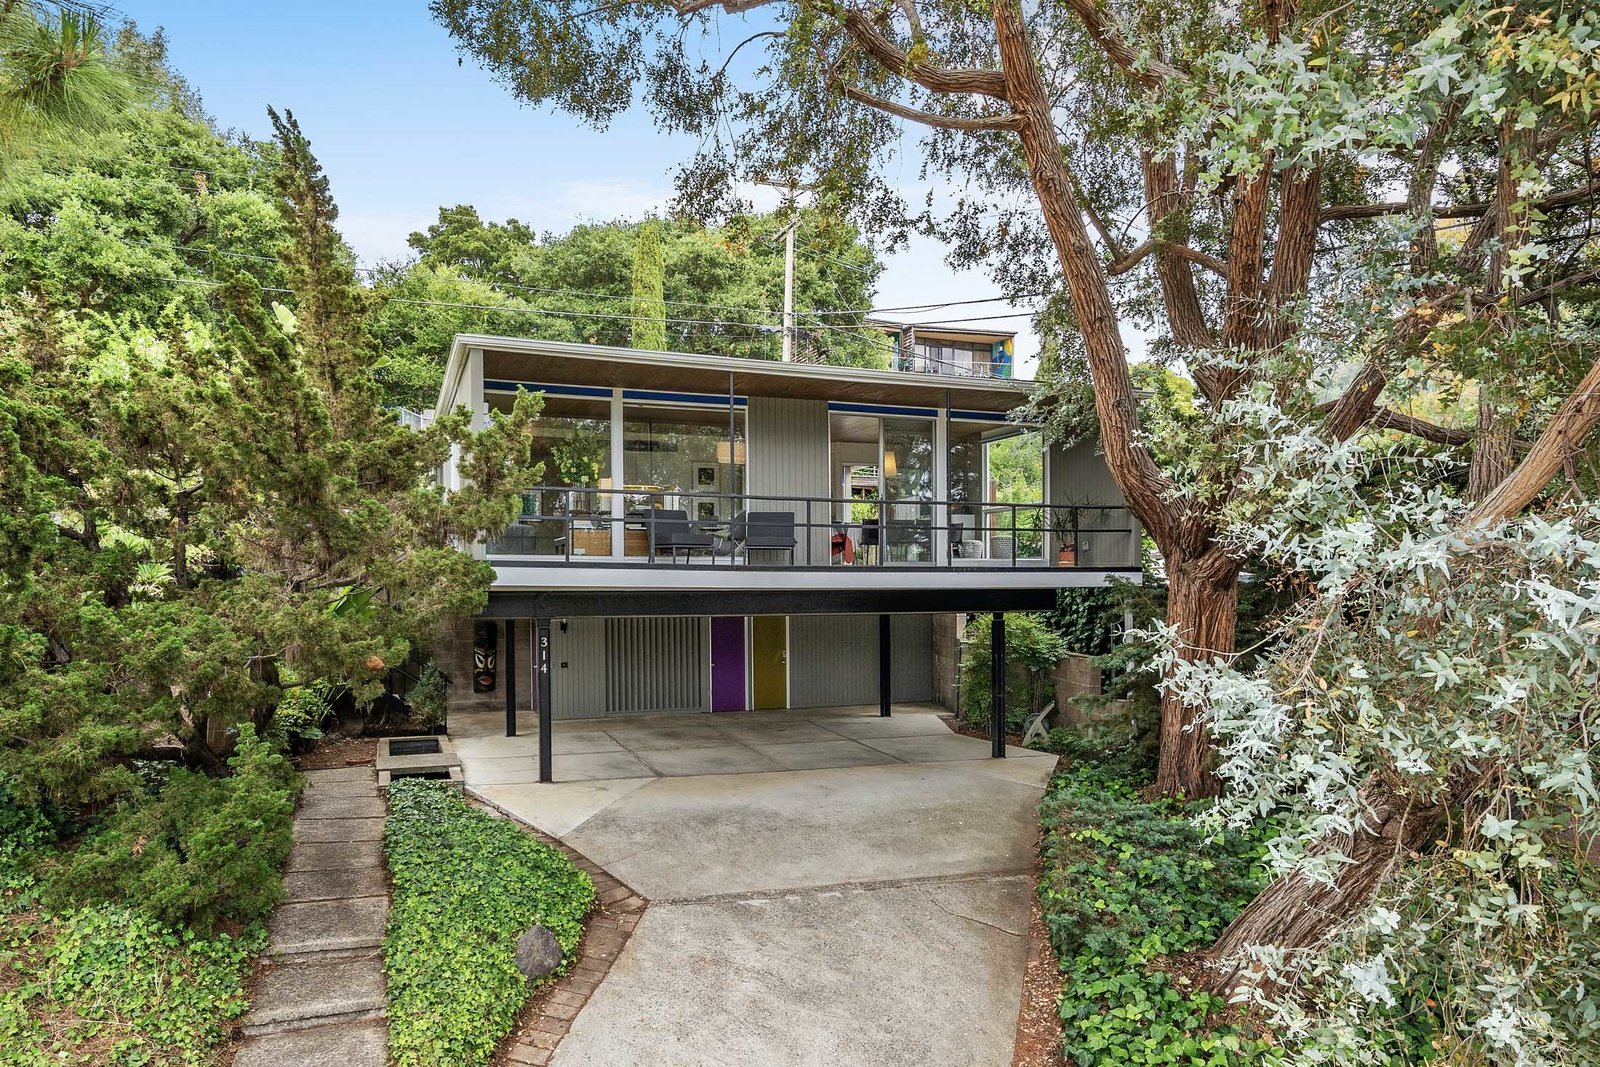 Photo 1 of 12 in A Case Study–Style Home in San Luis Obispo Lists for $870K